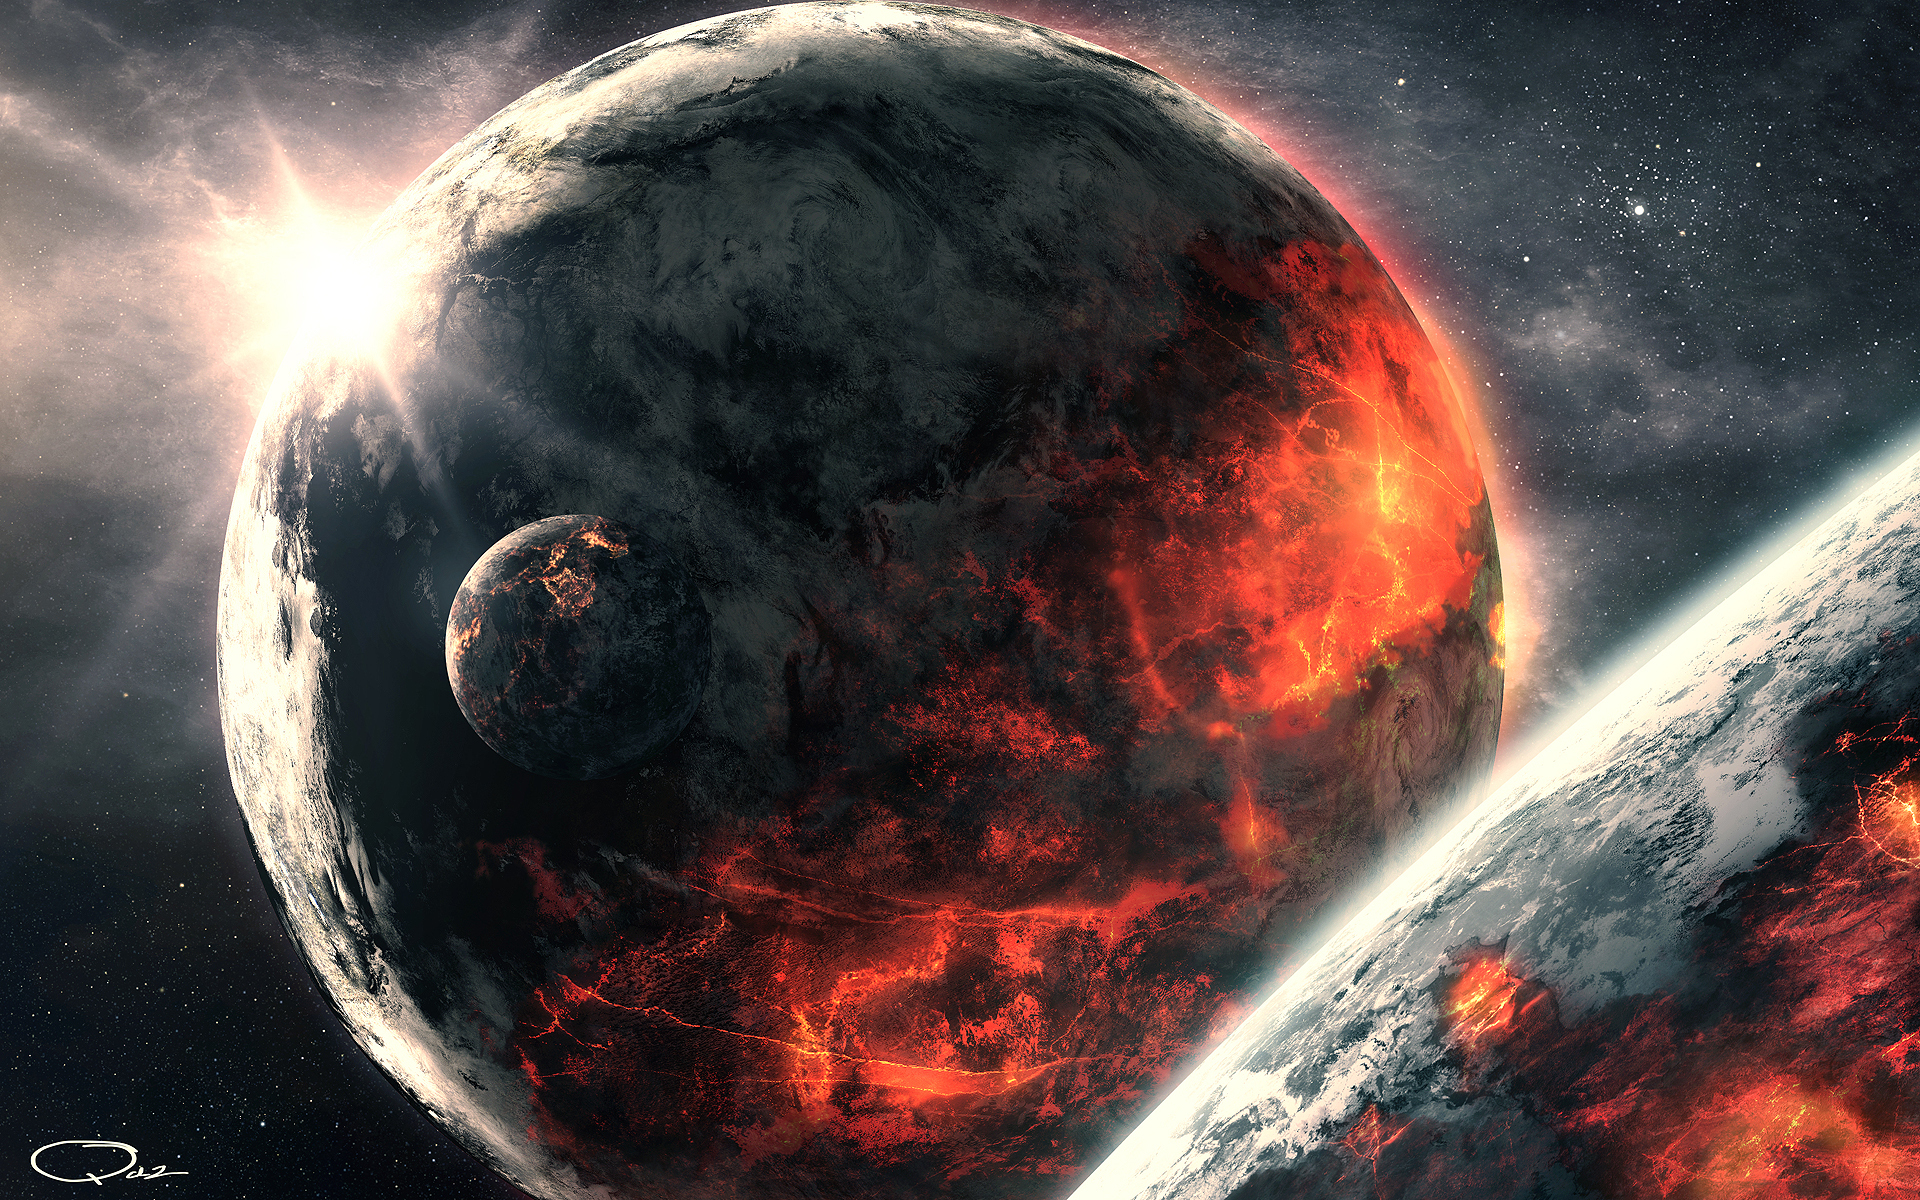 Space Demonic Art Hd Wallpaper: Planets Full HD Wallpaper And Background Image